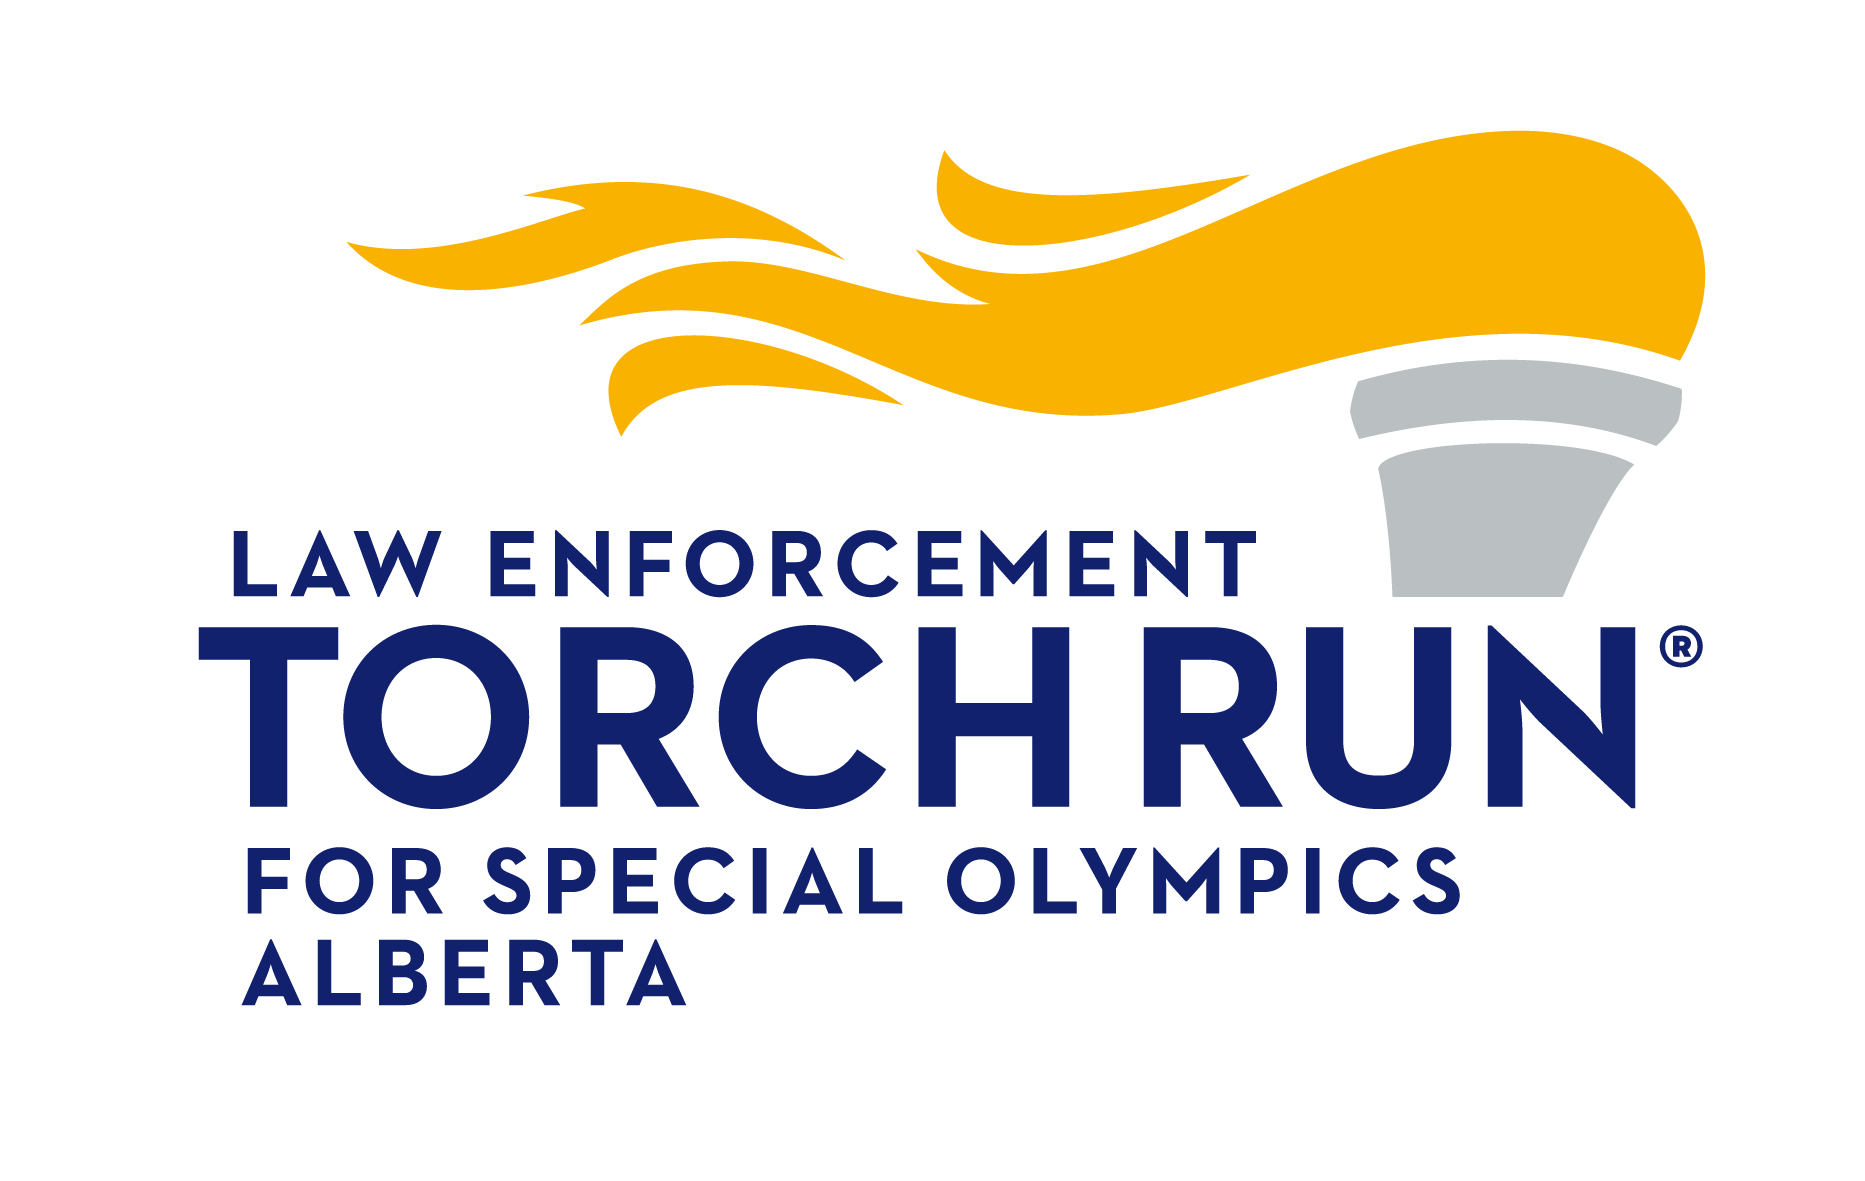 Law Enforcement Torch Run for Special Olympics Alberta